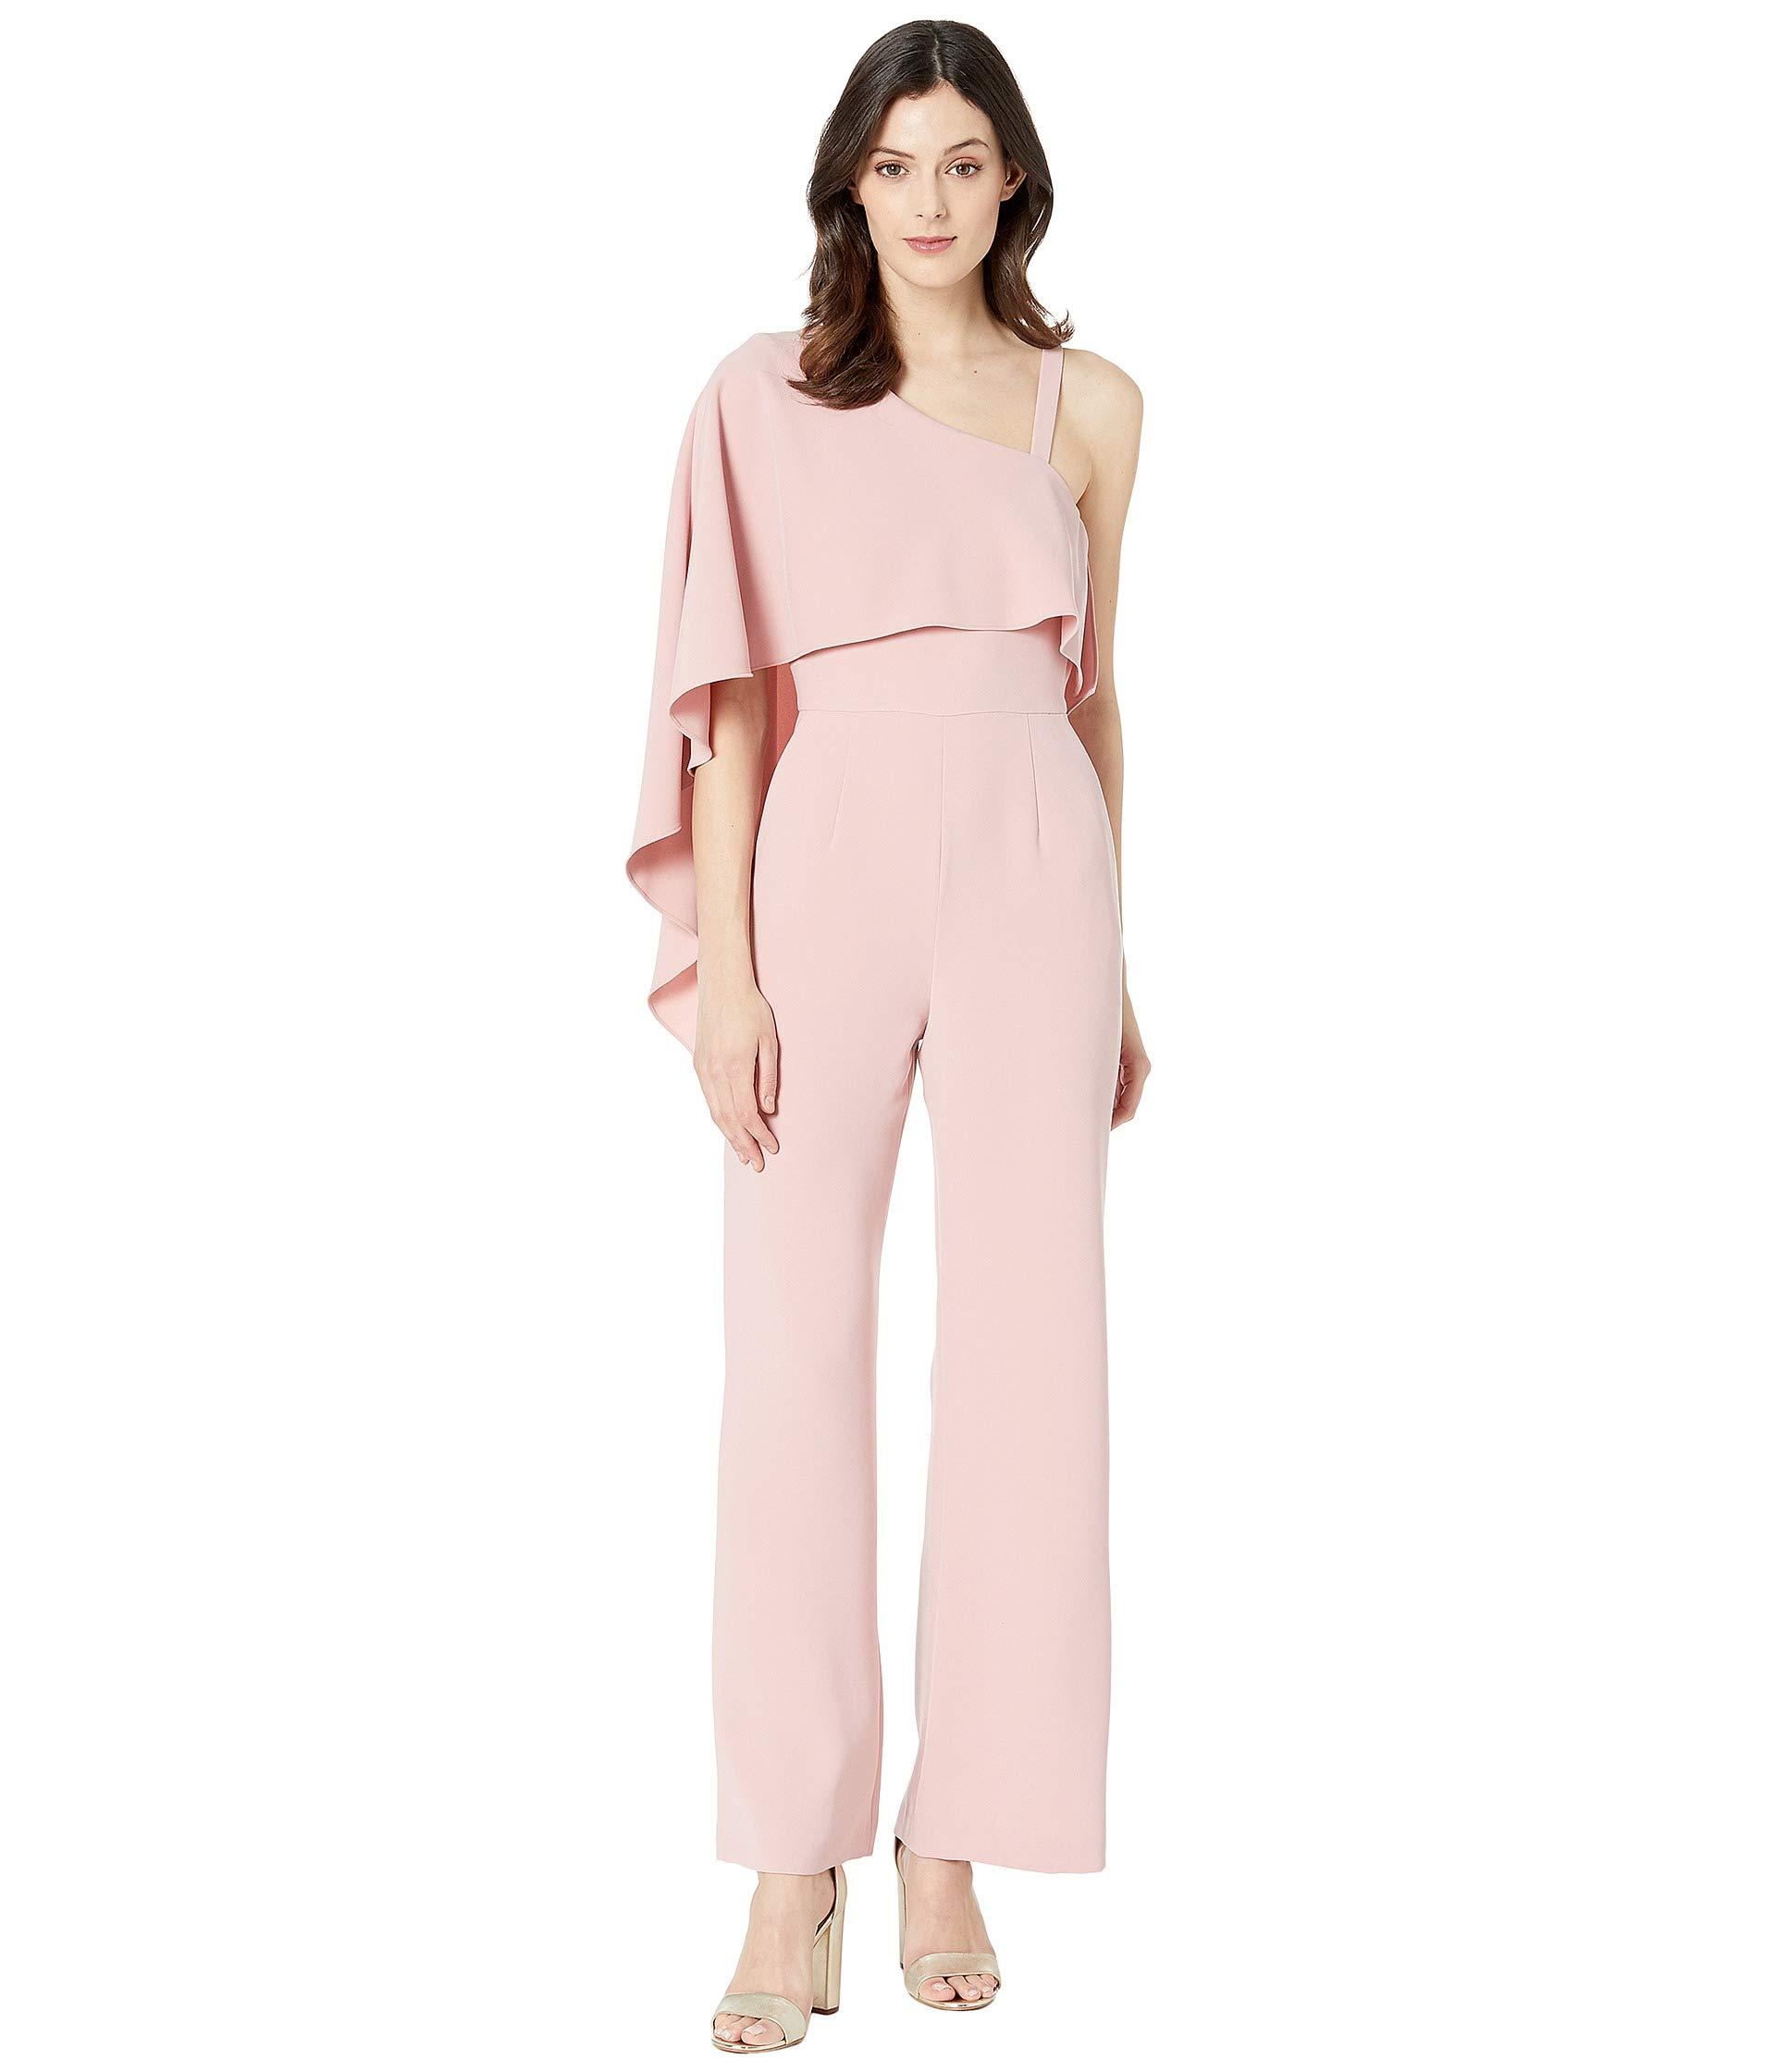 7373e7163f9 Lyst - Tahari One Shoulder Popover Jumpsuit (dusty Pink) Women s ...